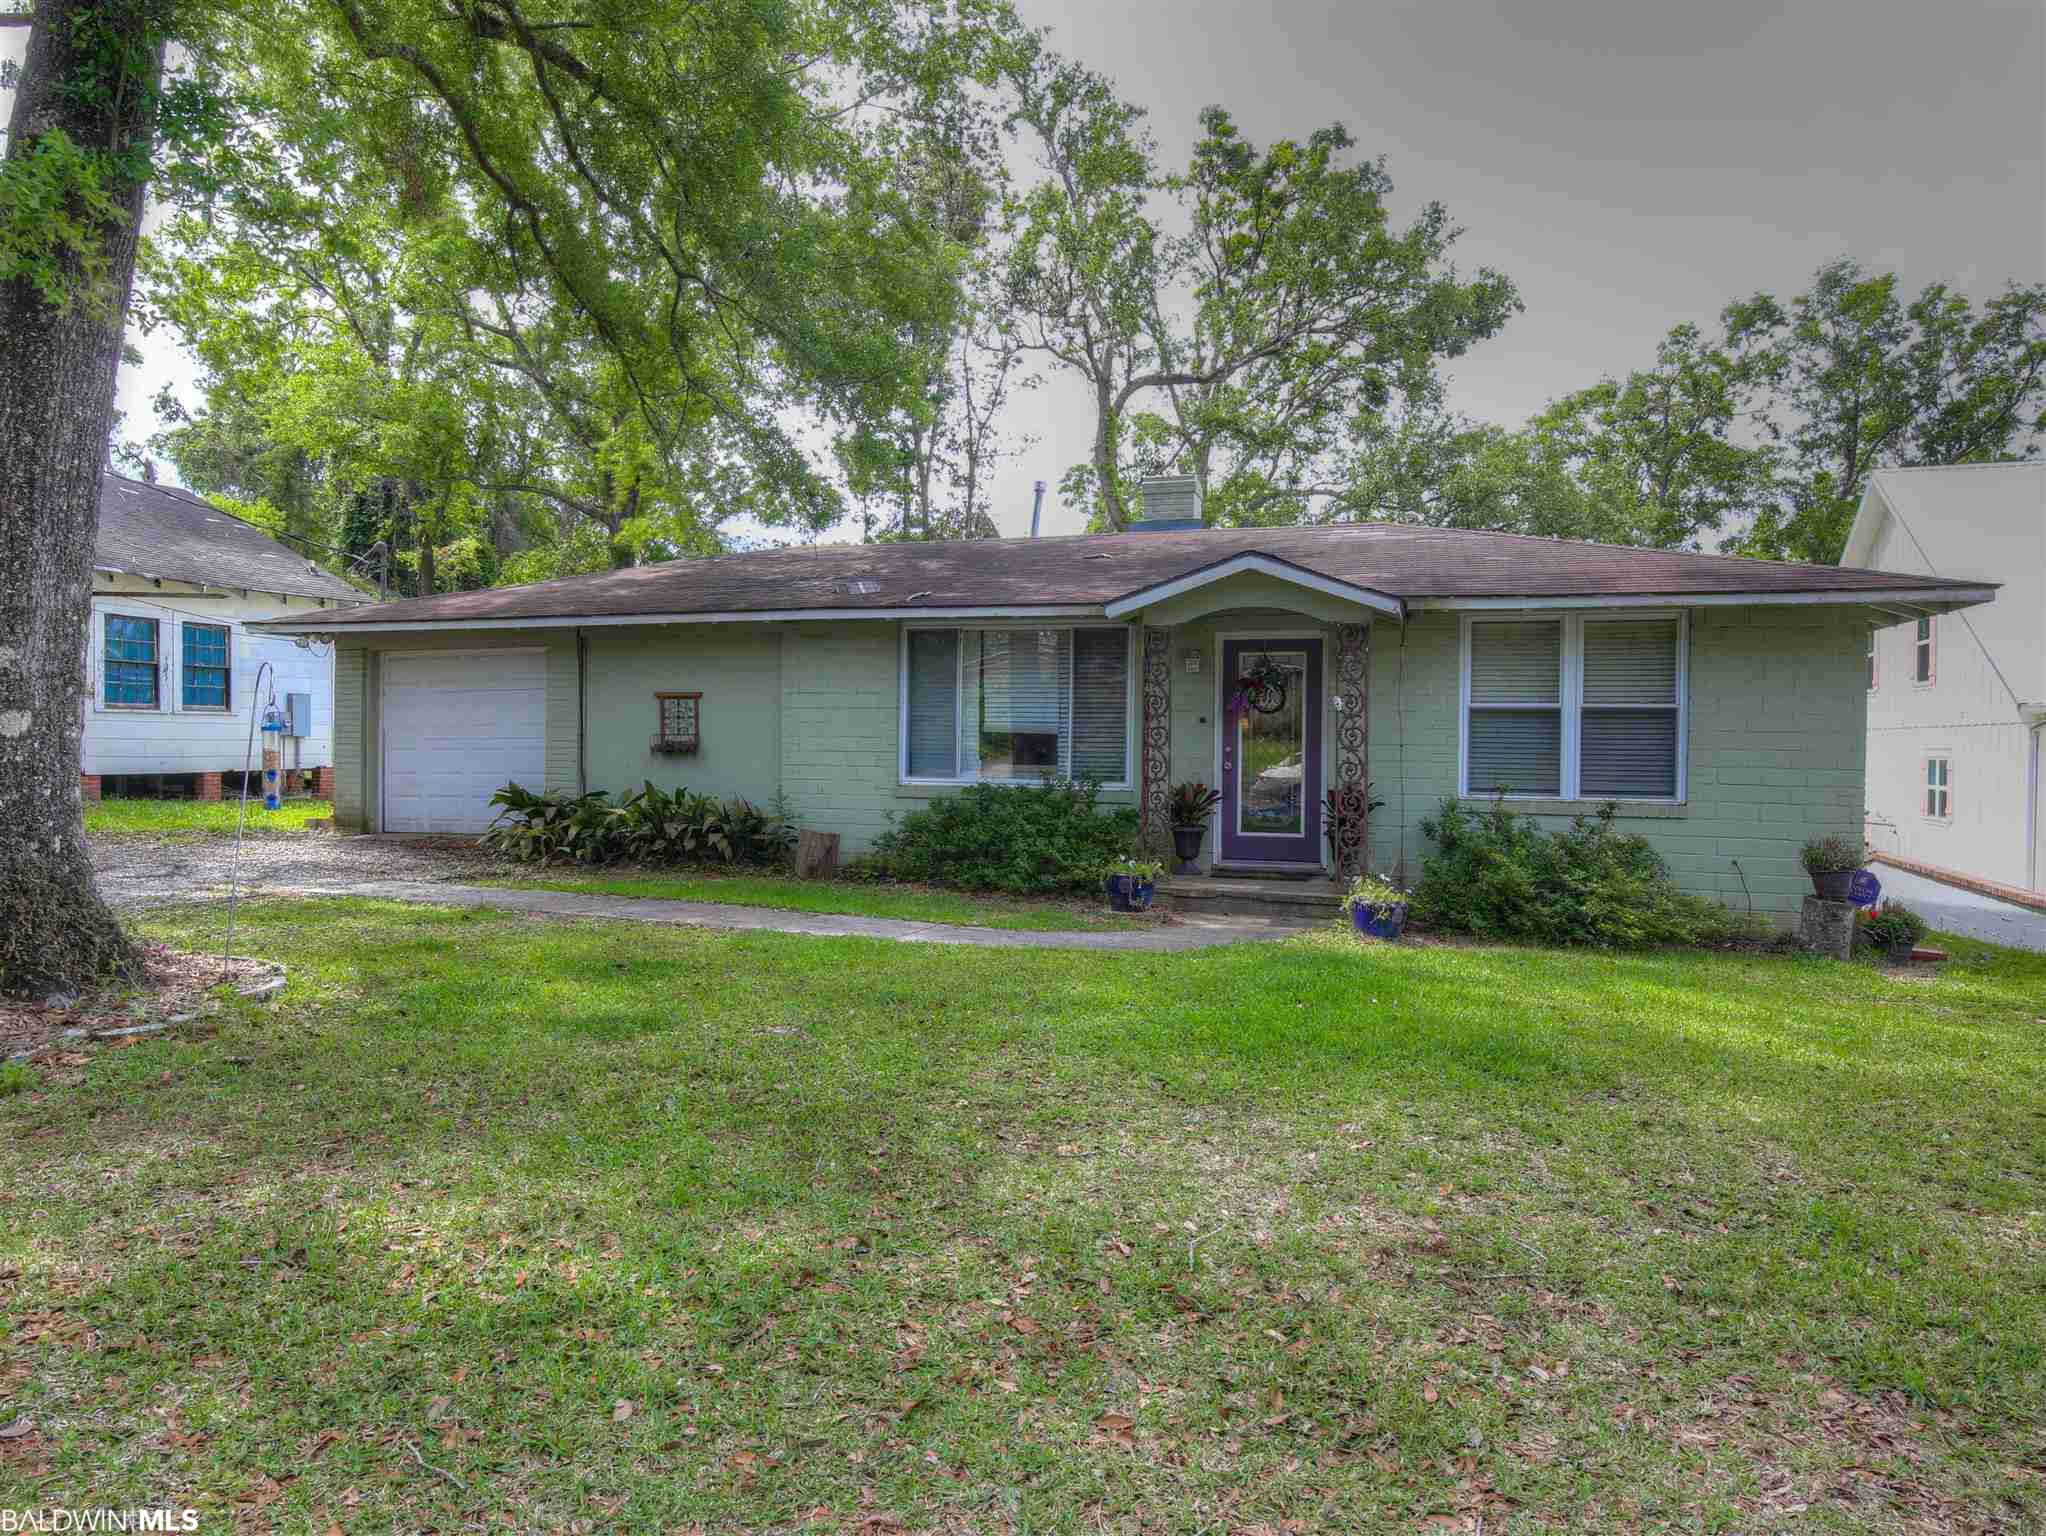 """This quaint cottage is merely a short stroll (less than 3 blocks) away from the sunsets of Mobile Bay. Enjoy your days having fun on the Bay or shopping/dining in downtown Fairhope. This cozy bungalow could be completely renovated or tear it down and build the home of your dreams on beautiful Pier Avenue.  Utilities are already in place. Home is being sold """"AS-IS""""."""